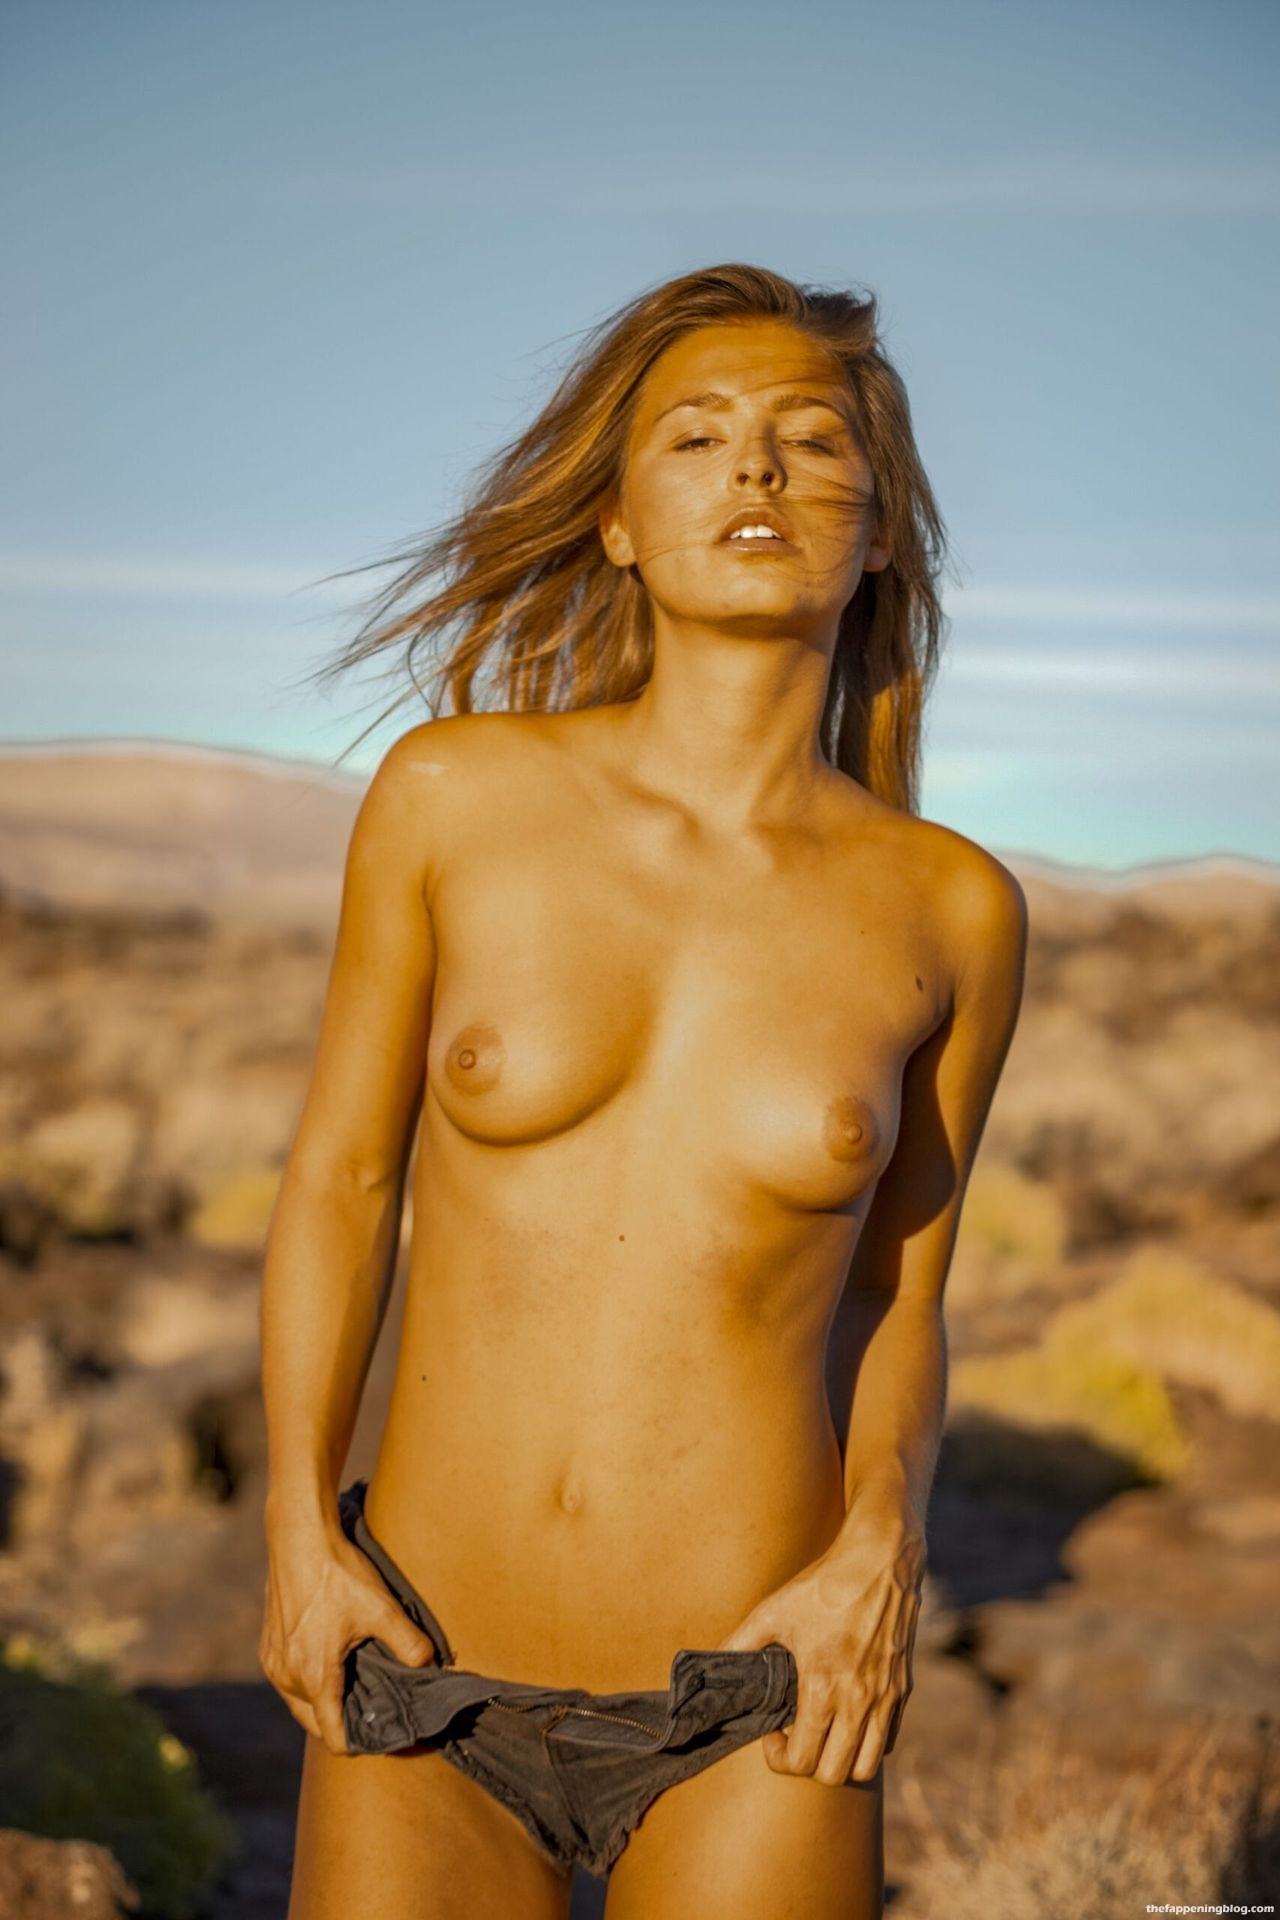 Marisa-Papen-Stunning-Naked-Body-44-scaled1-thefappeningblog.com_.jpg